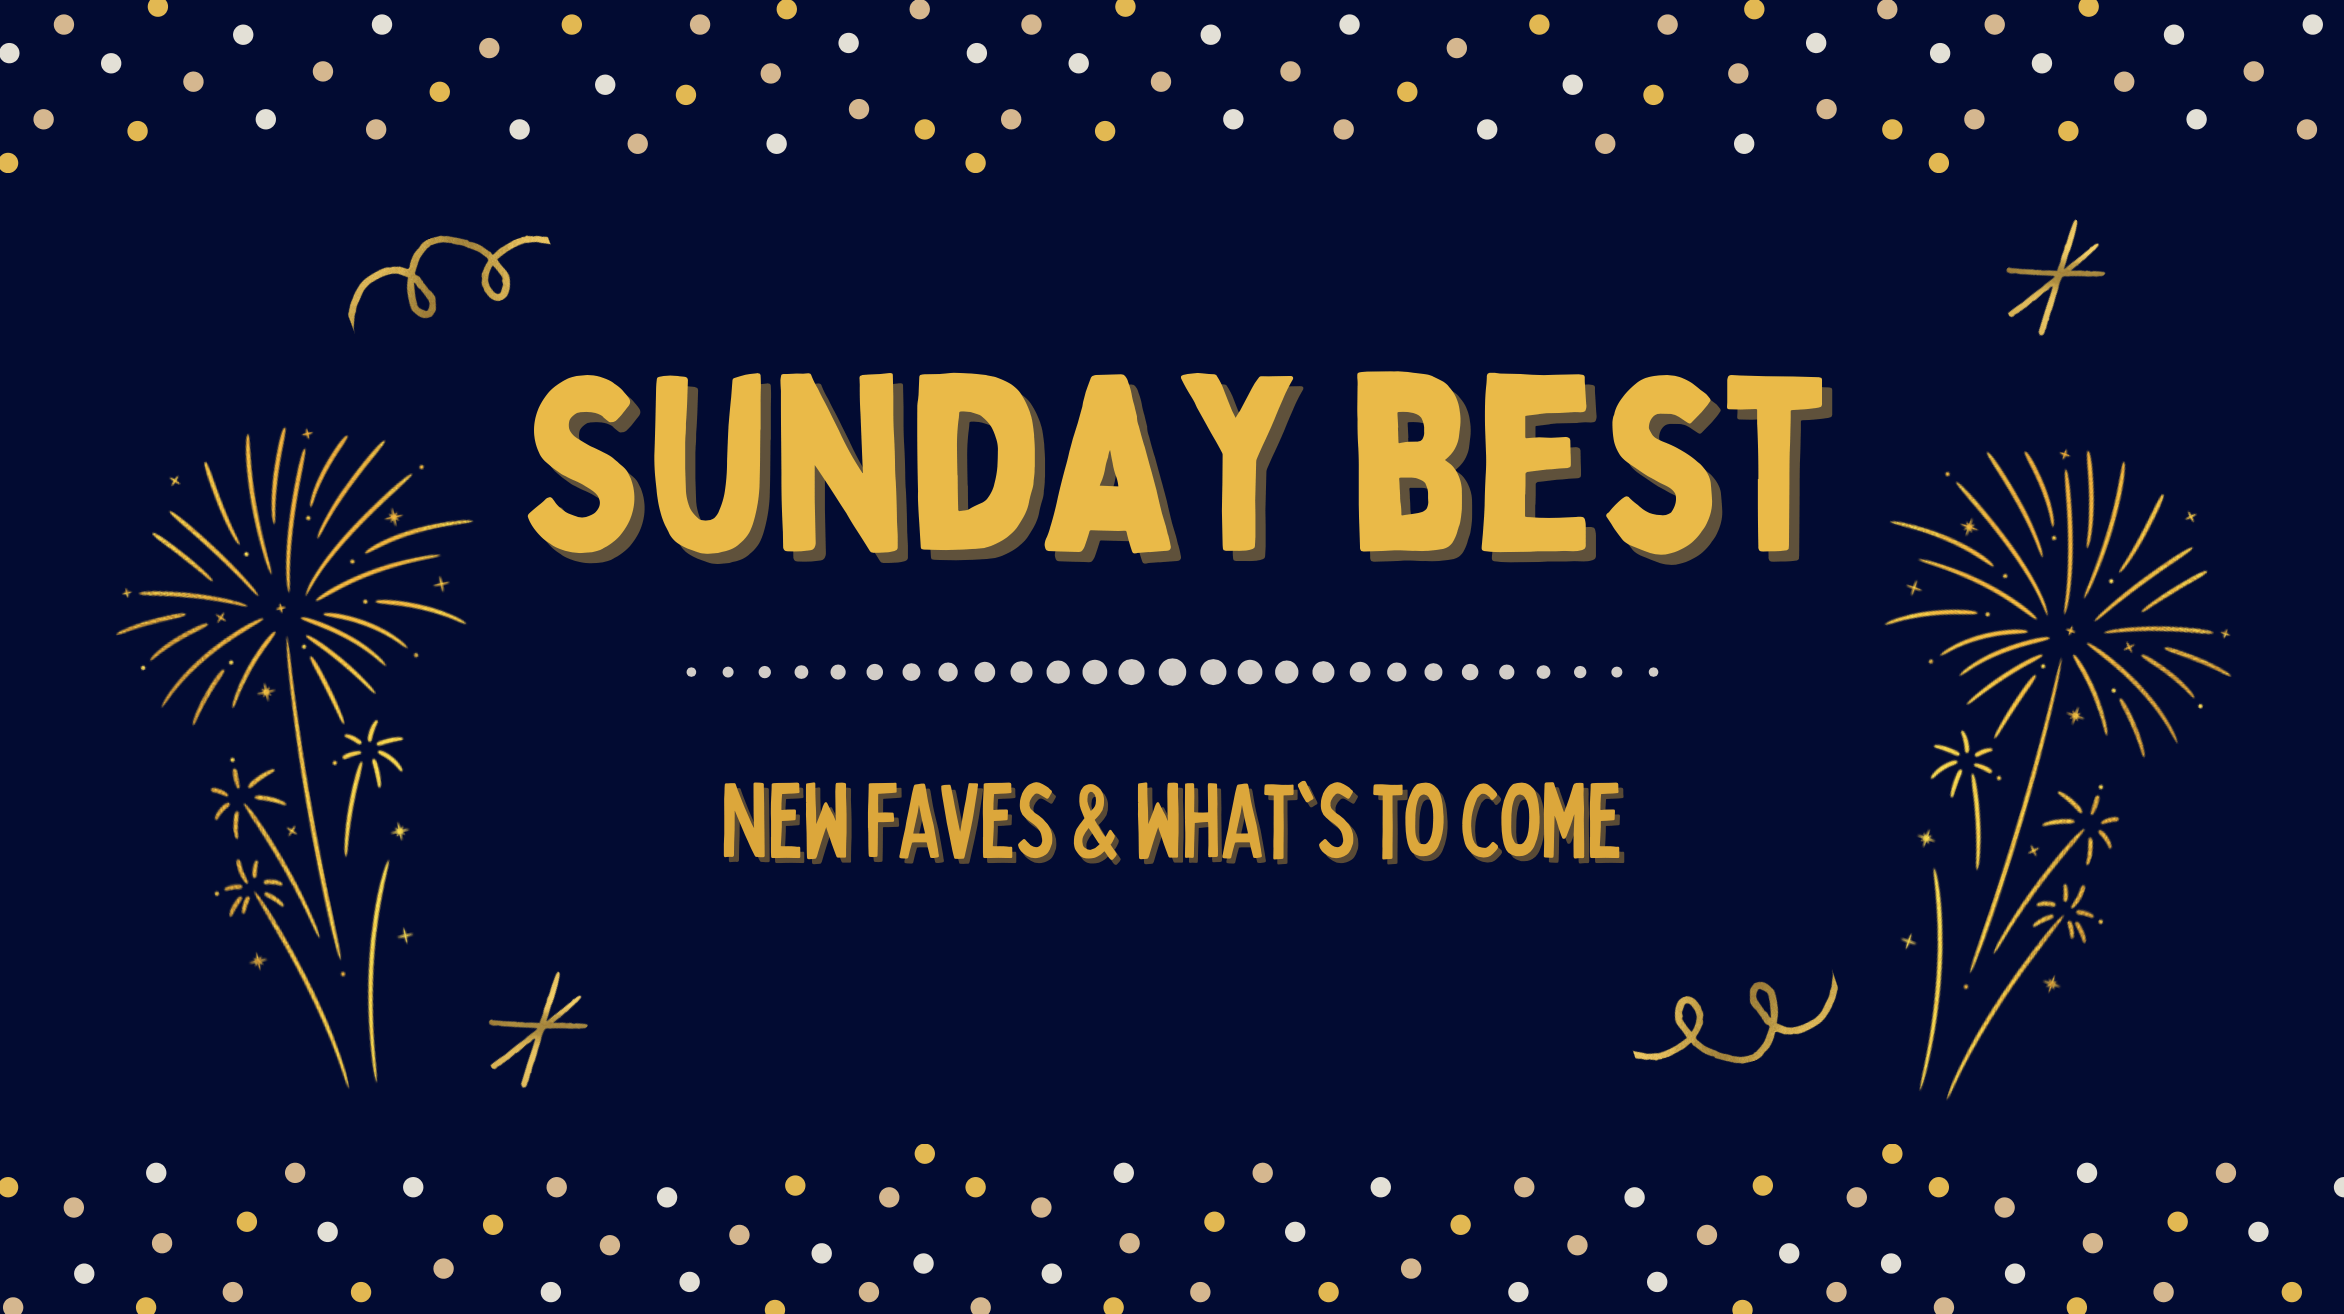 Sunday Best (new faves & what's to come)